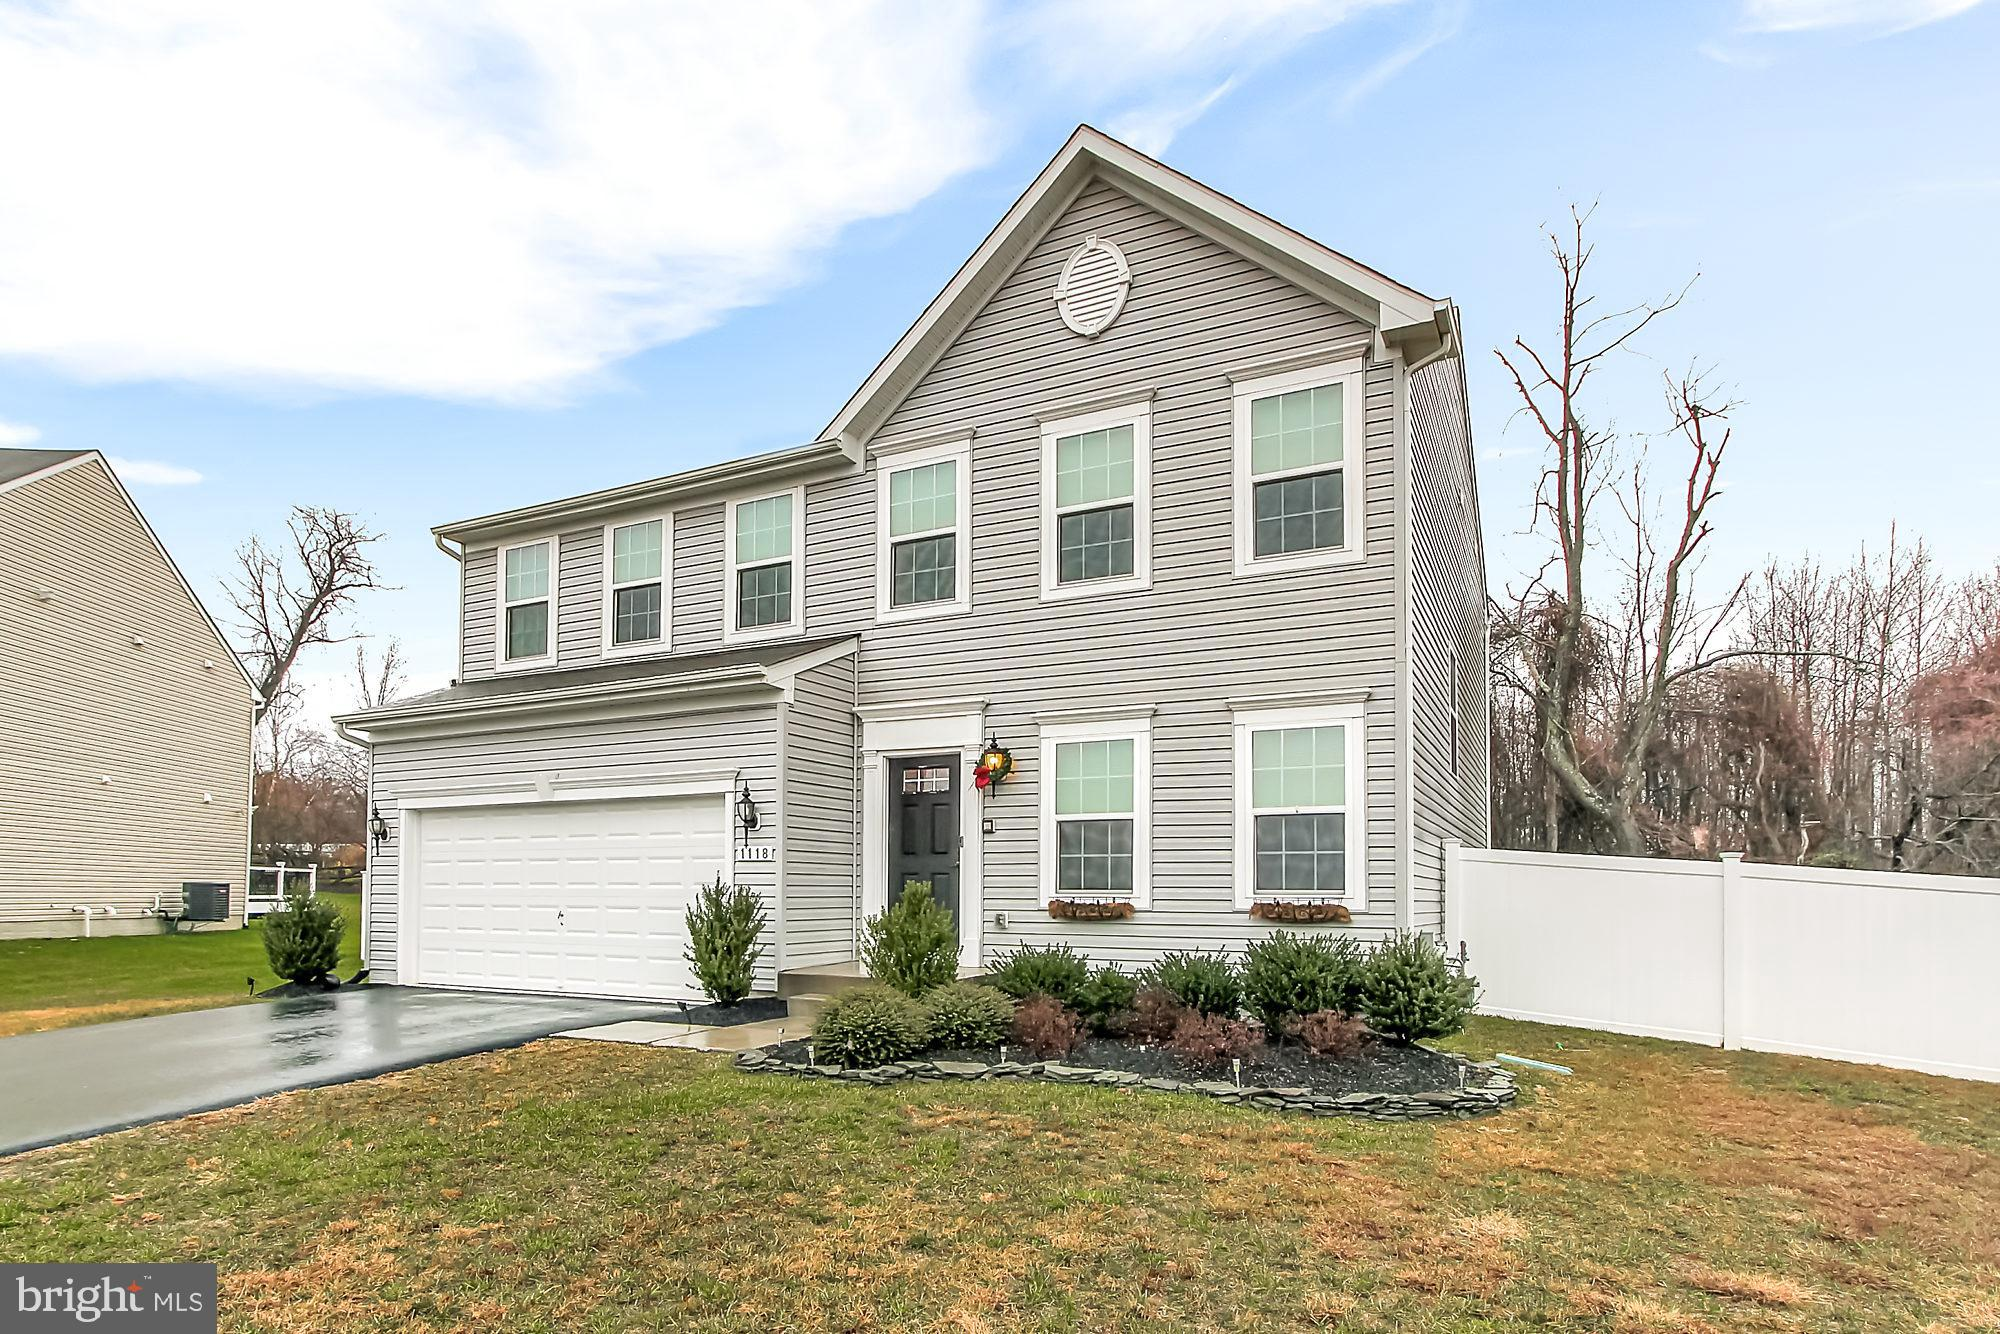 1118 MELISSA Ct, Havre De Grace, MD, 21078